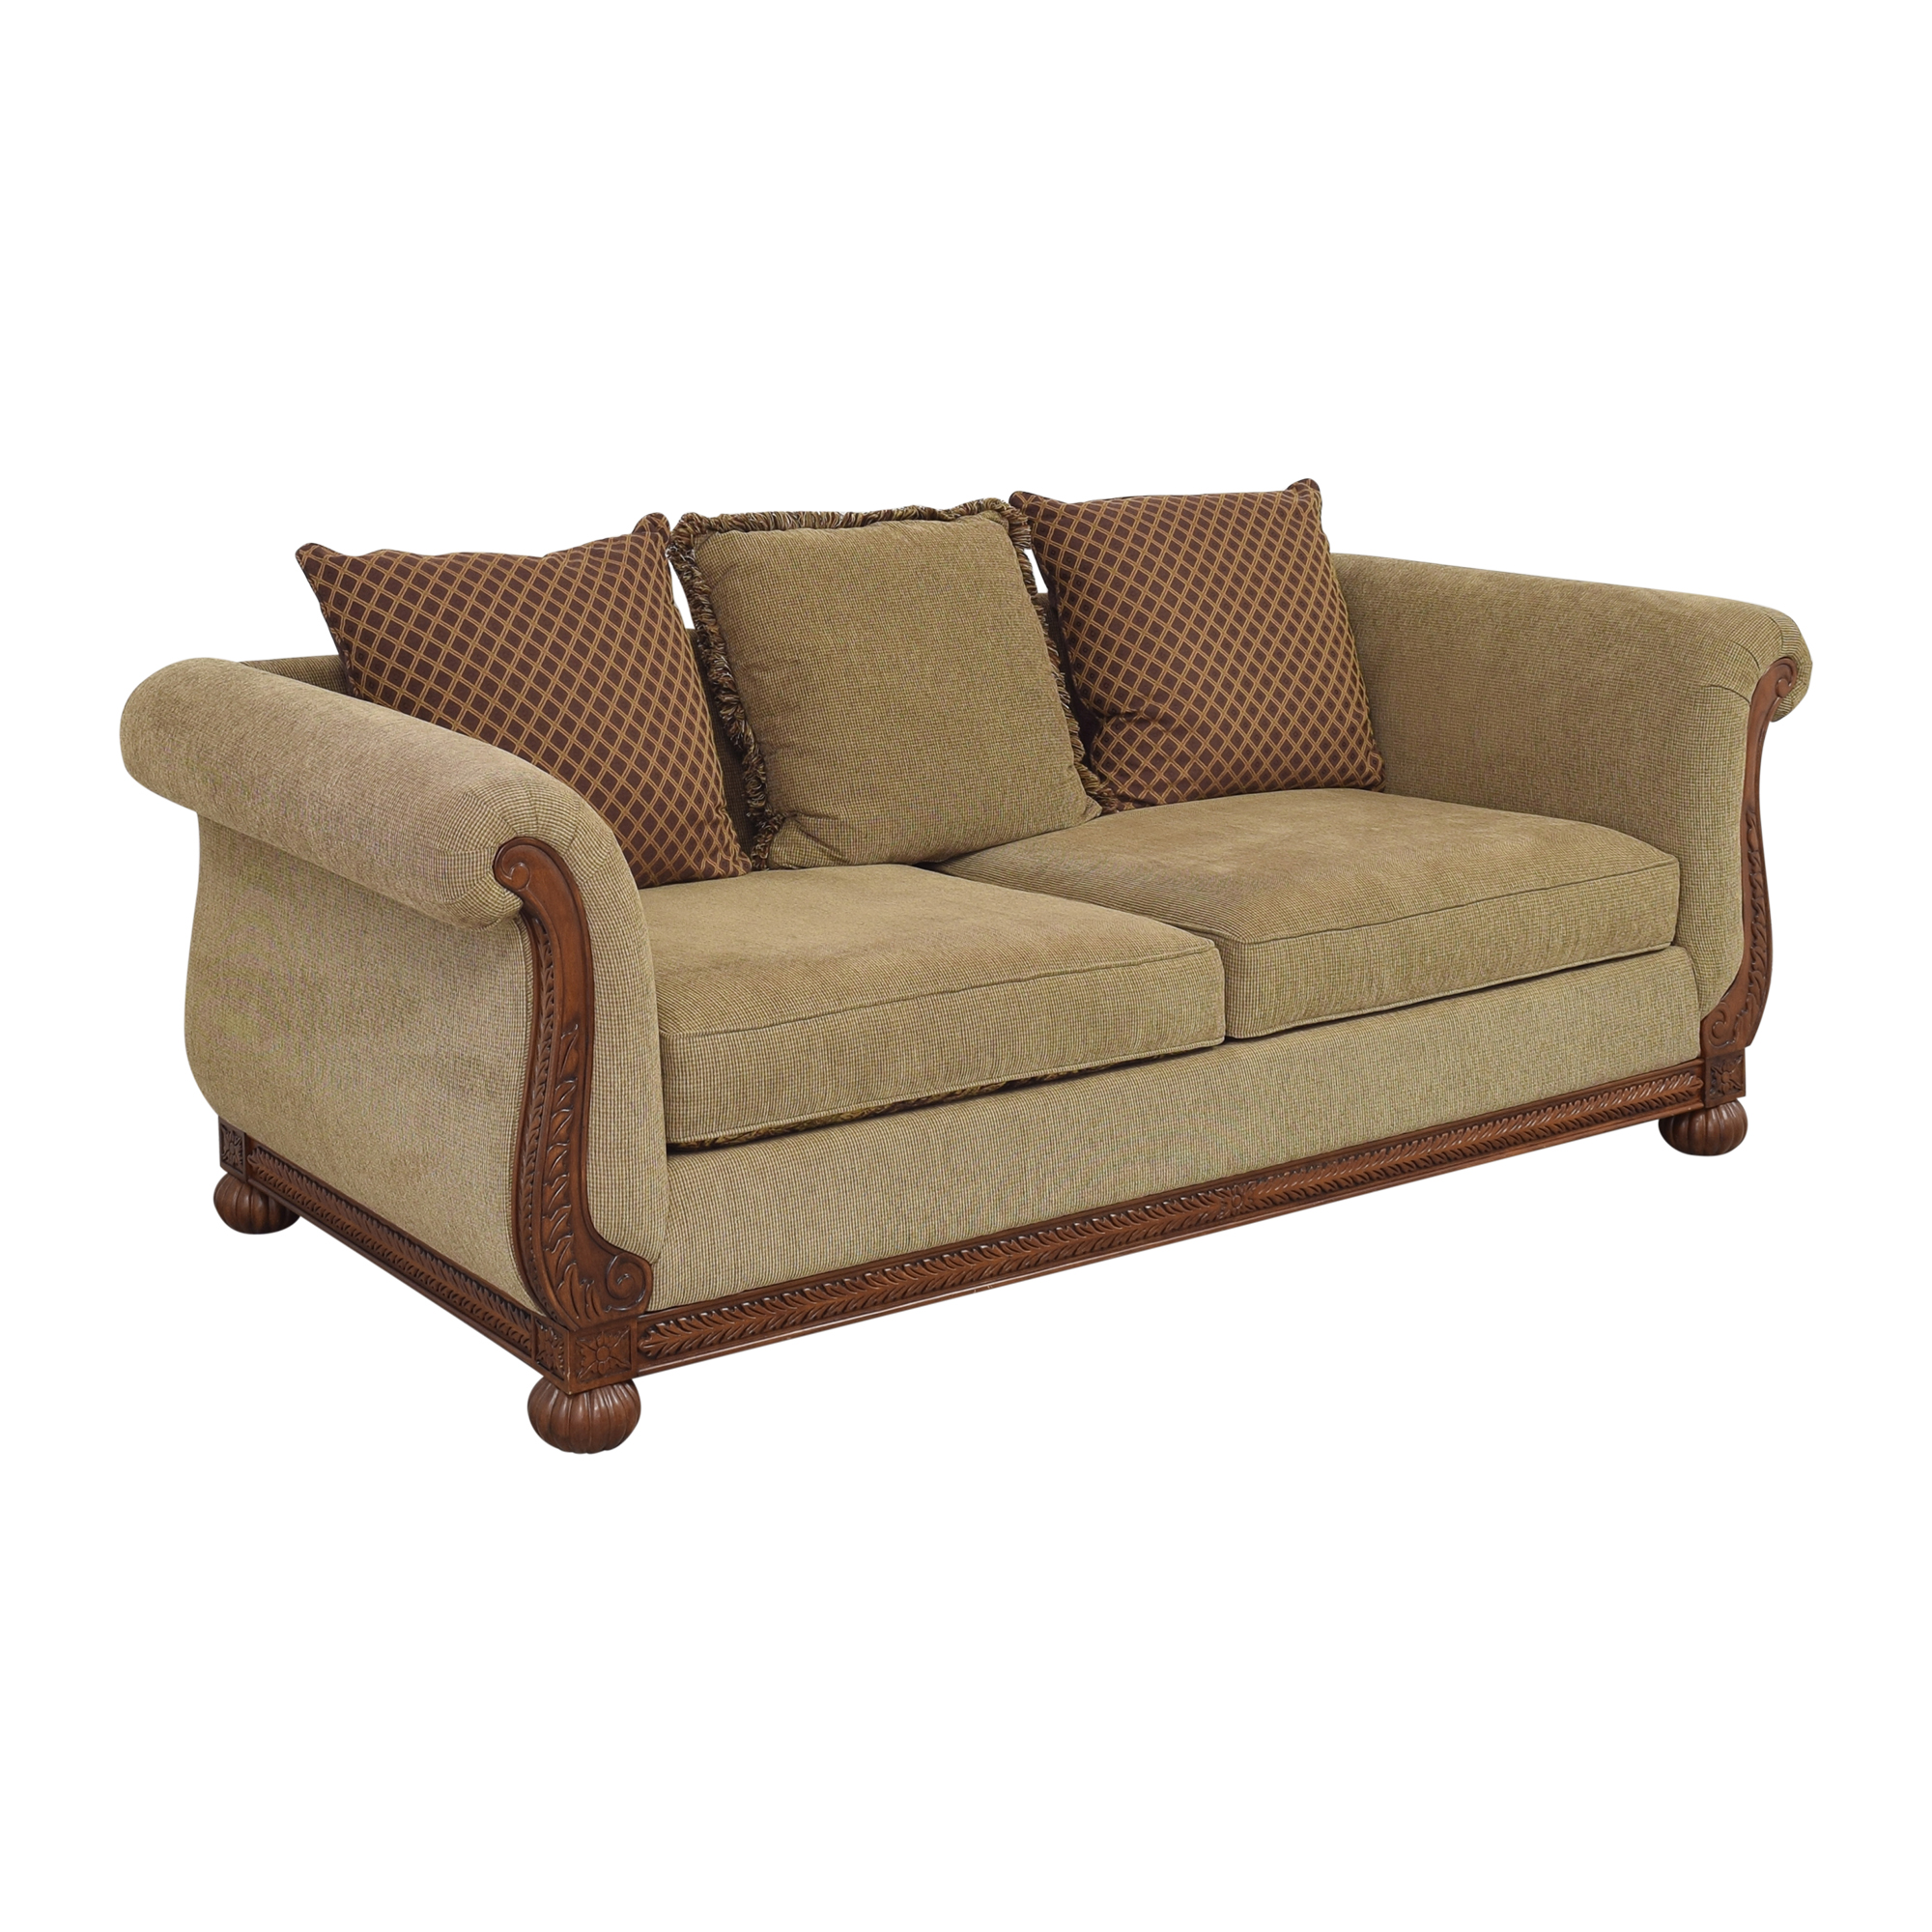 HM Richards Furniture Traditional Roll Arm Sofa HM Richards Furniture